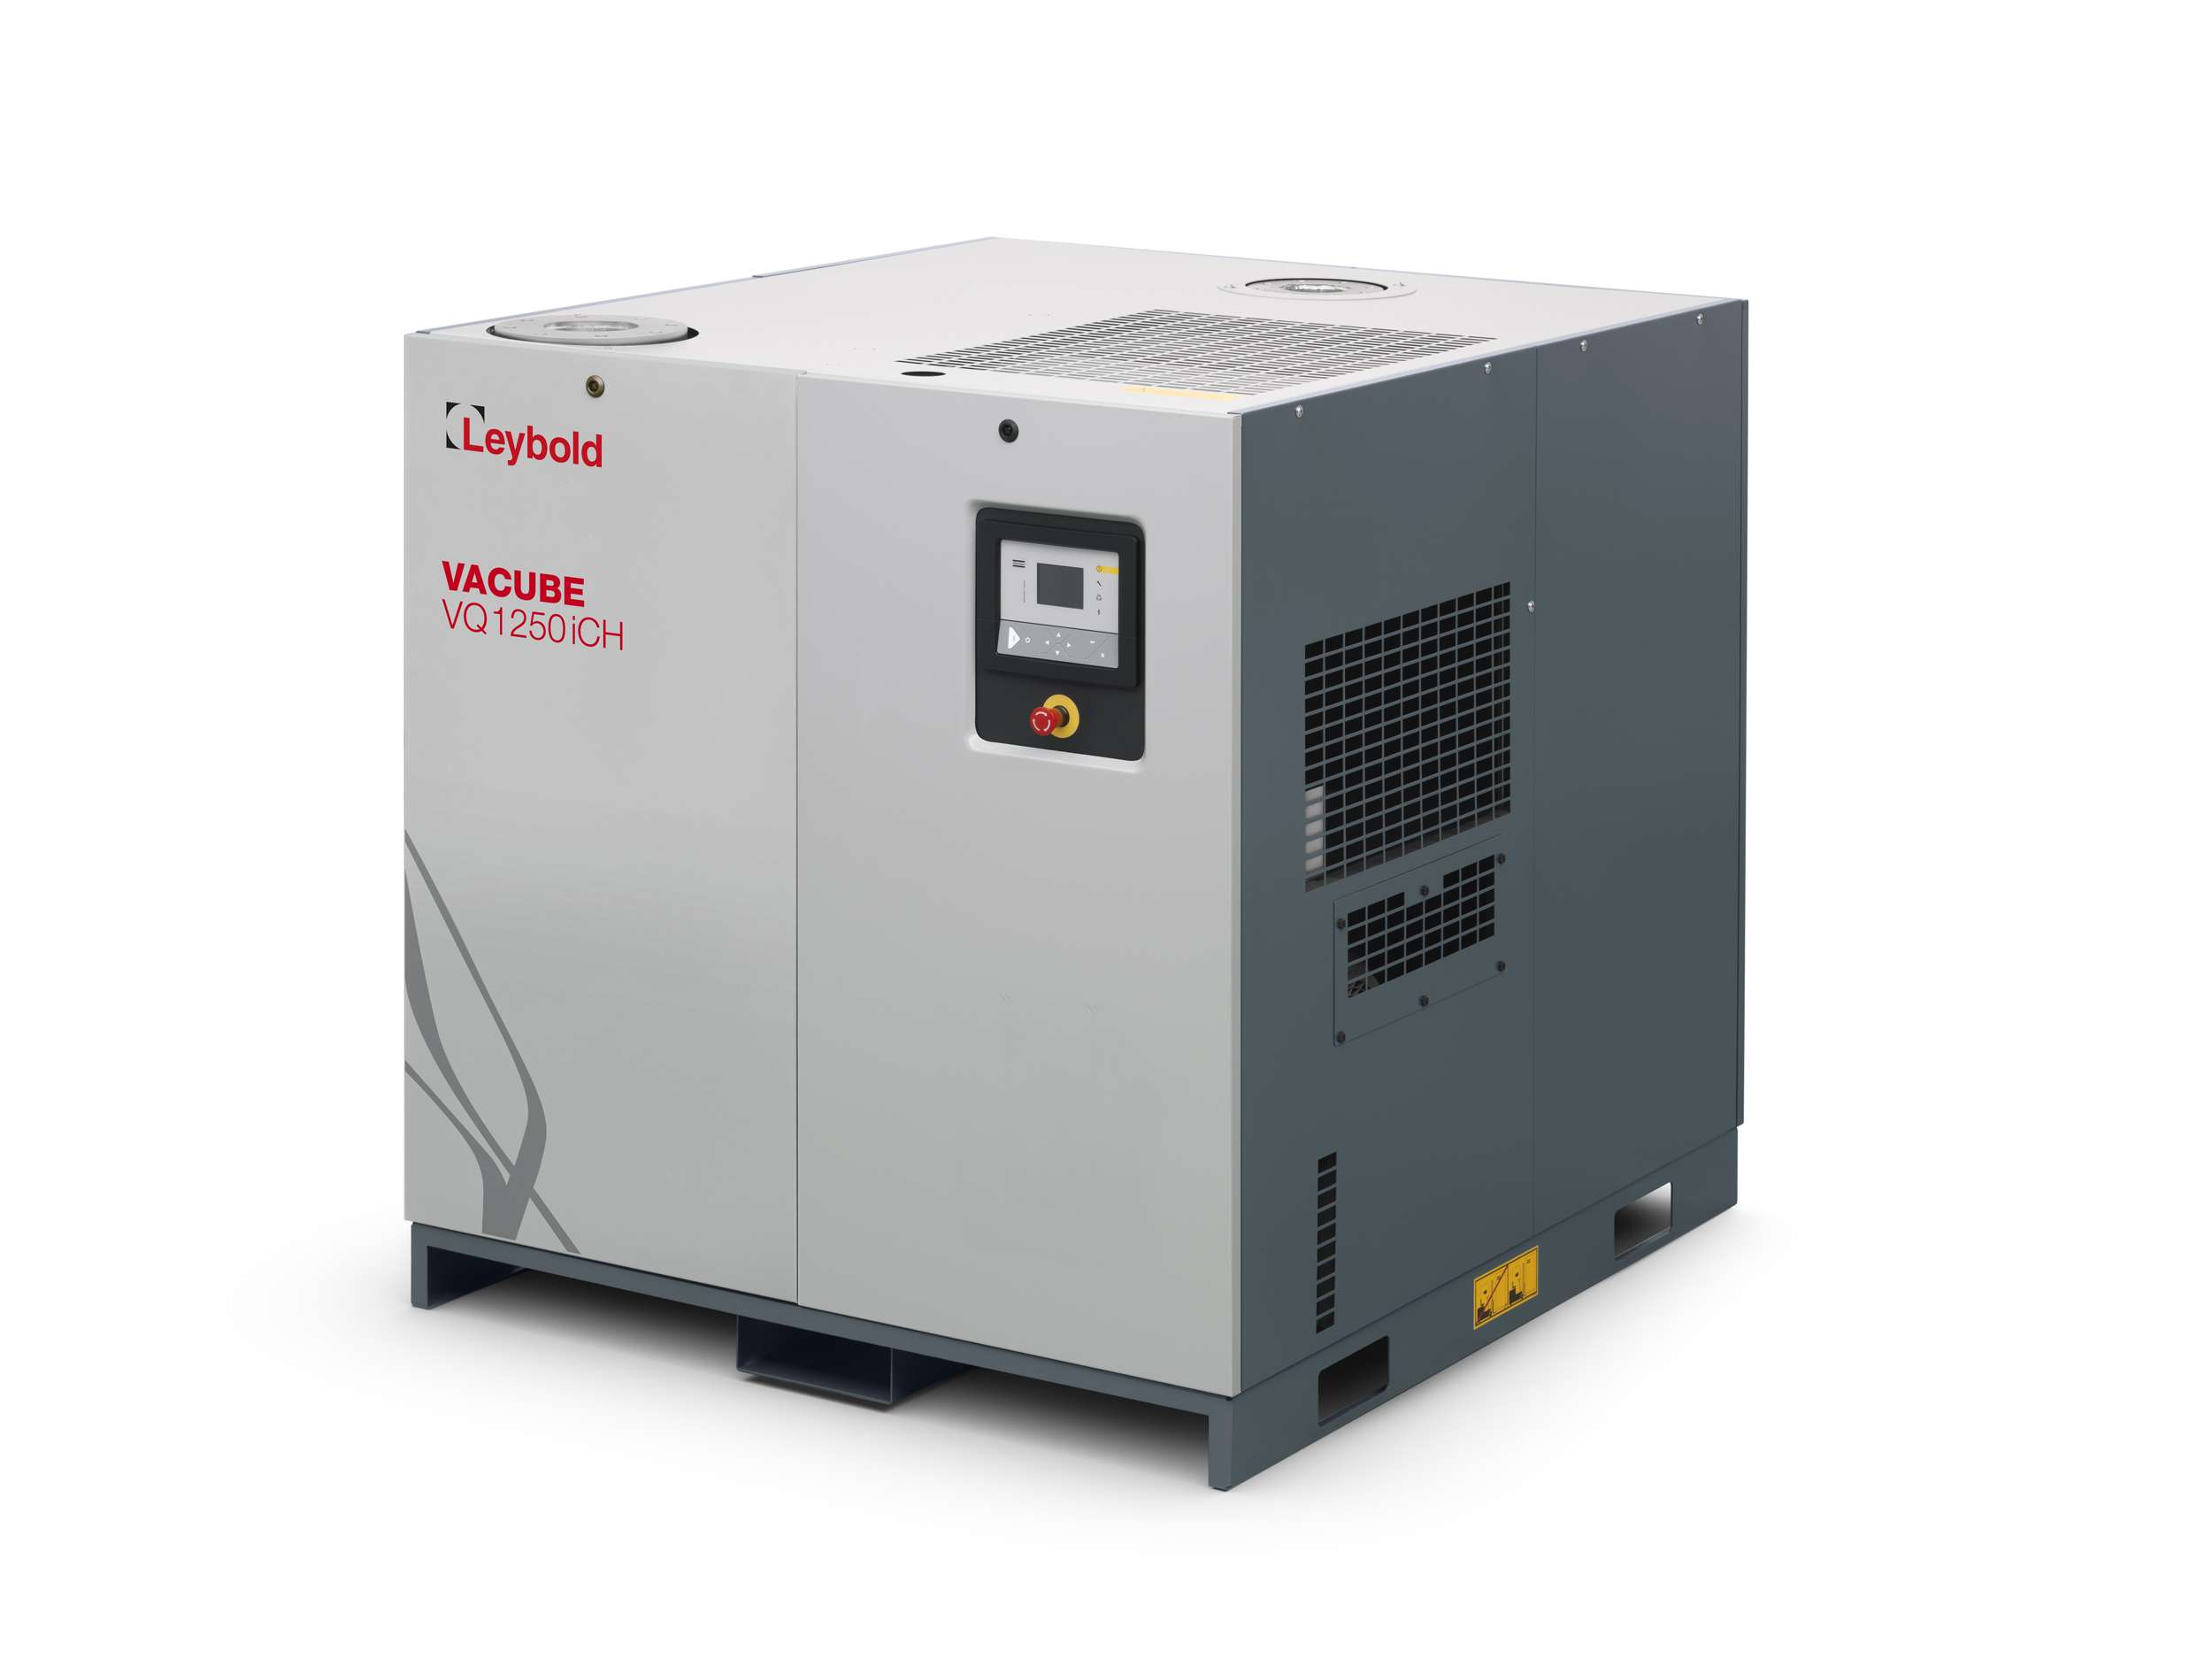 VACUBE VQ 1250   VACUBE   Oil Sealed Vacuum Pumps   Products